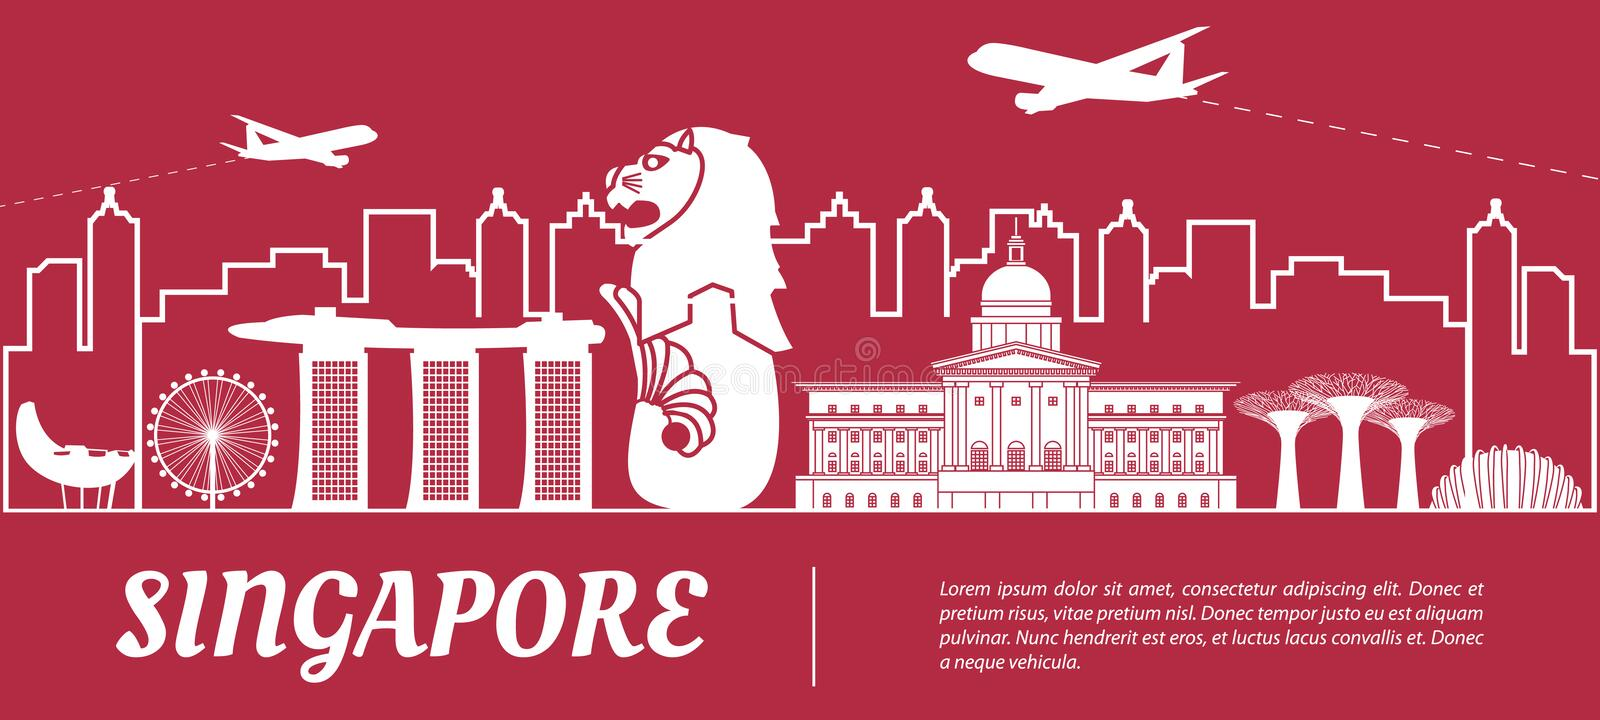 Singapore famous landmark silhouette with red and white color design royalty free illustration